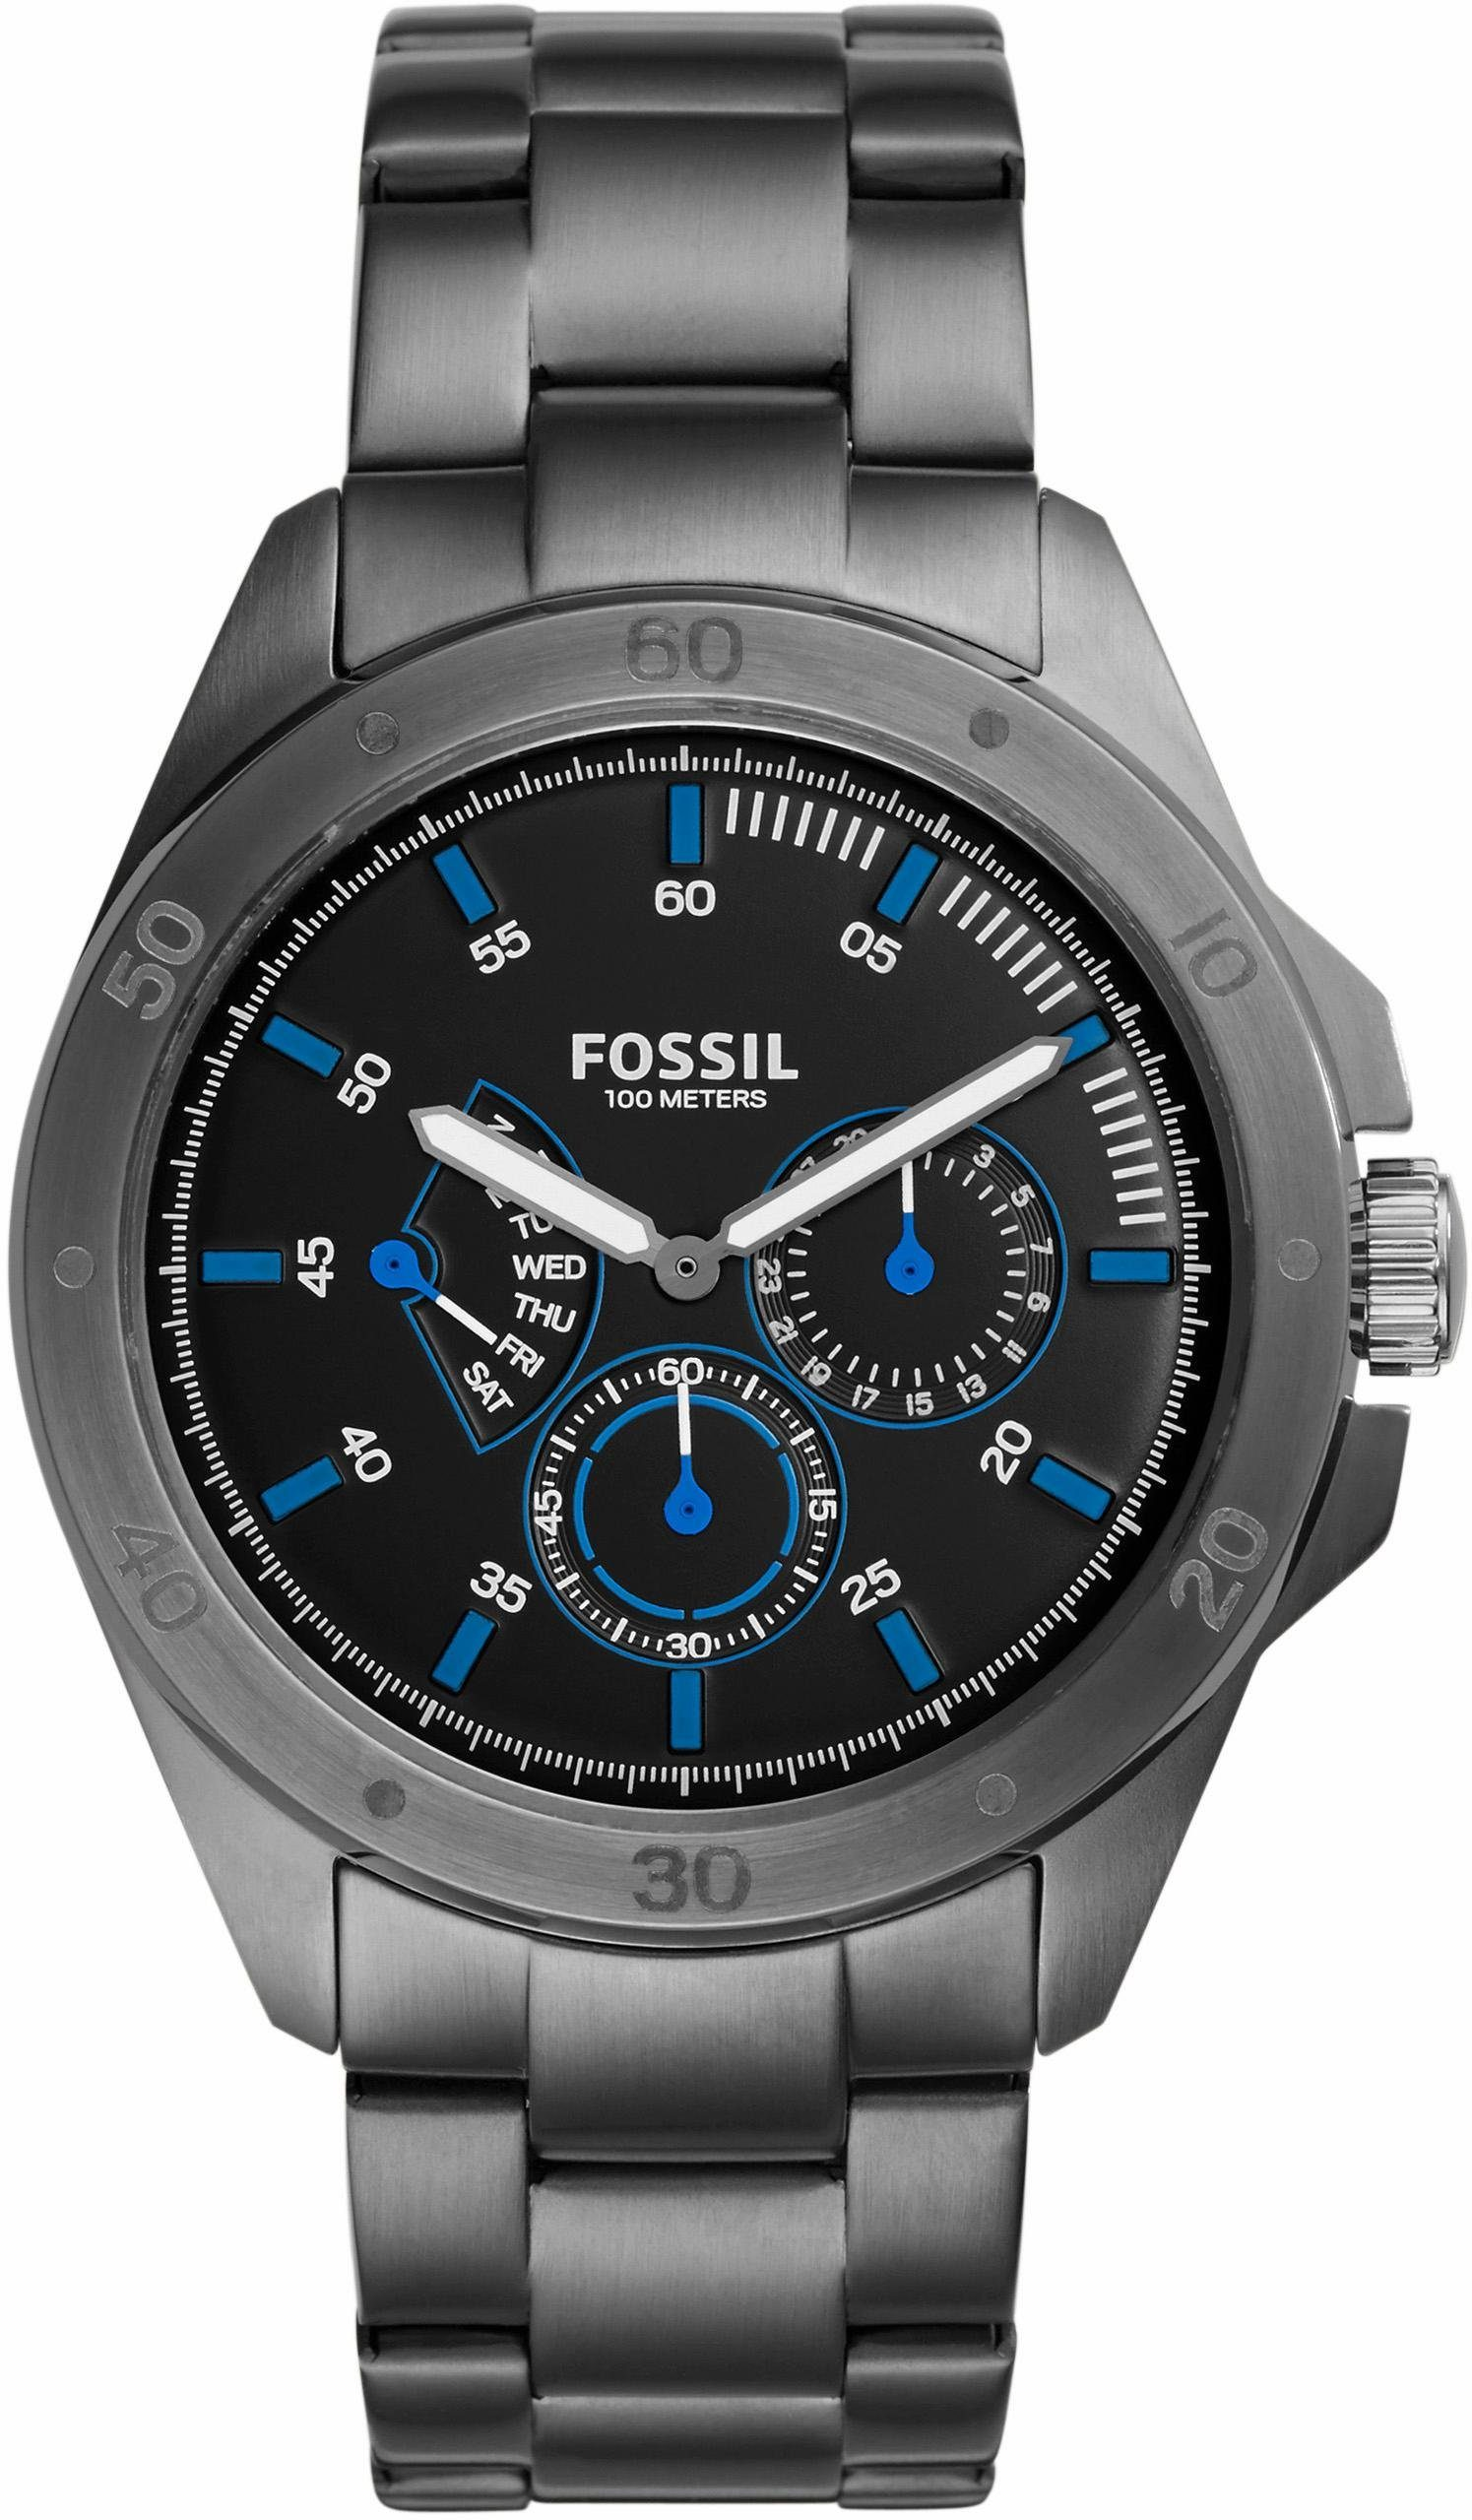 Fossil Multifunktionsuhr »SPORT 54, CH3035«